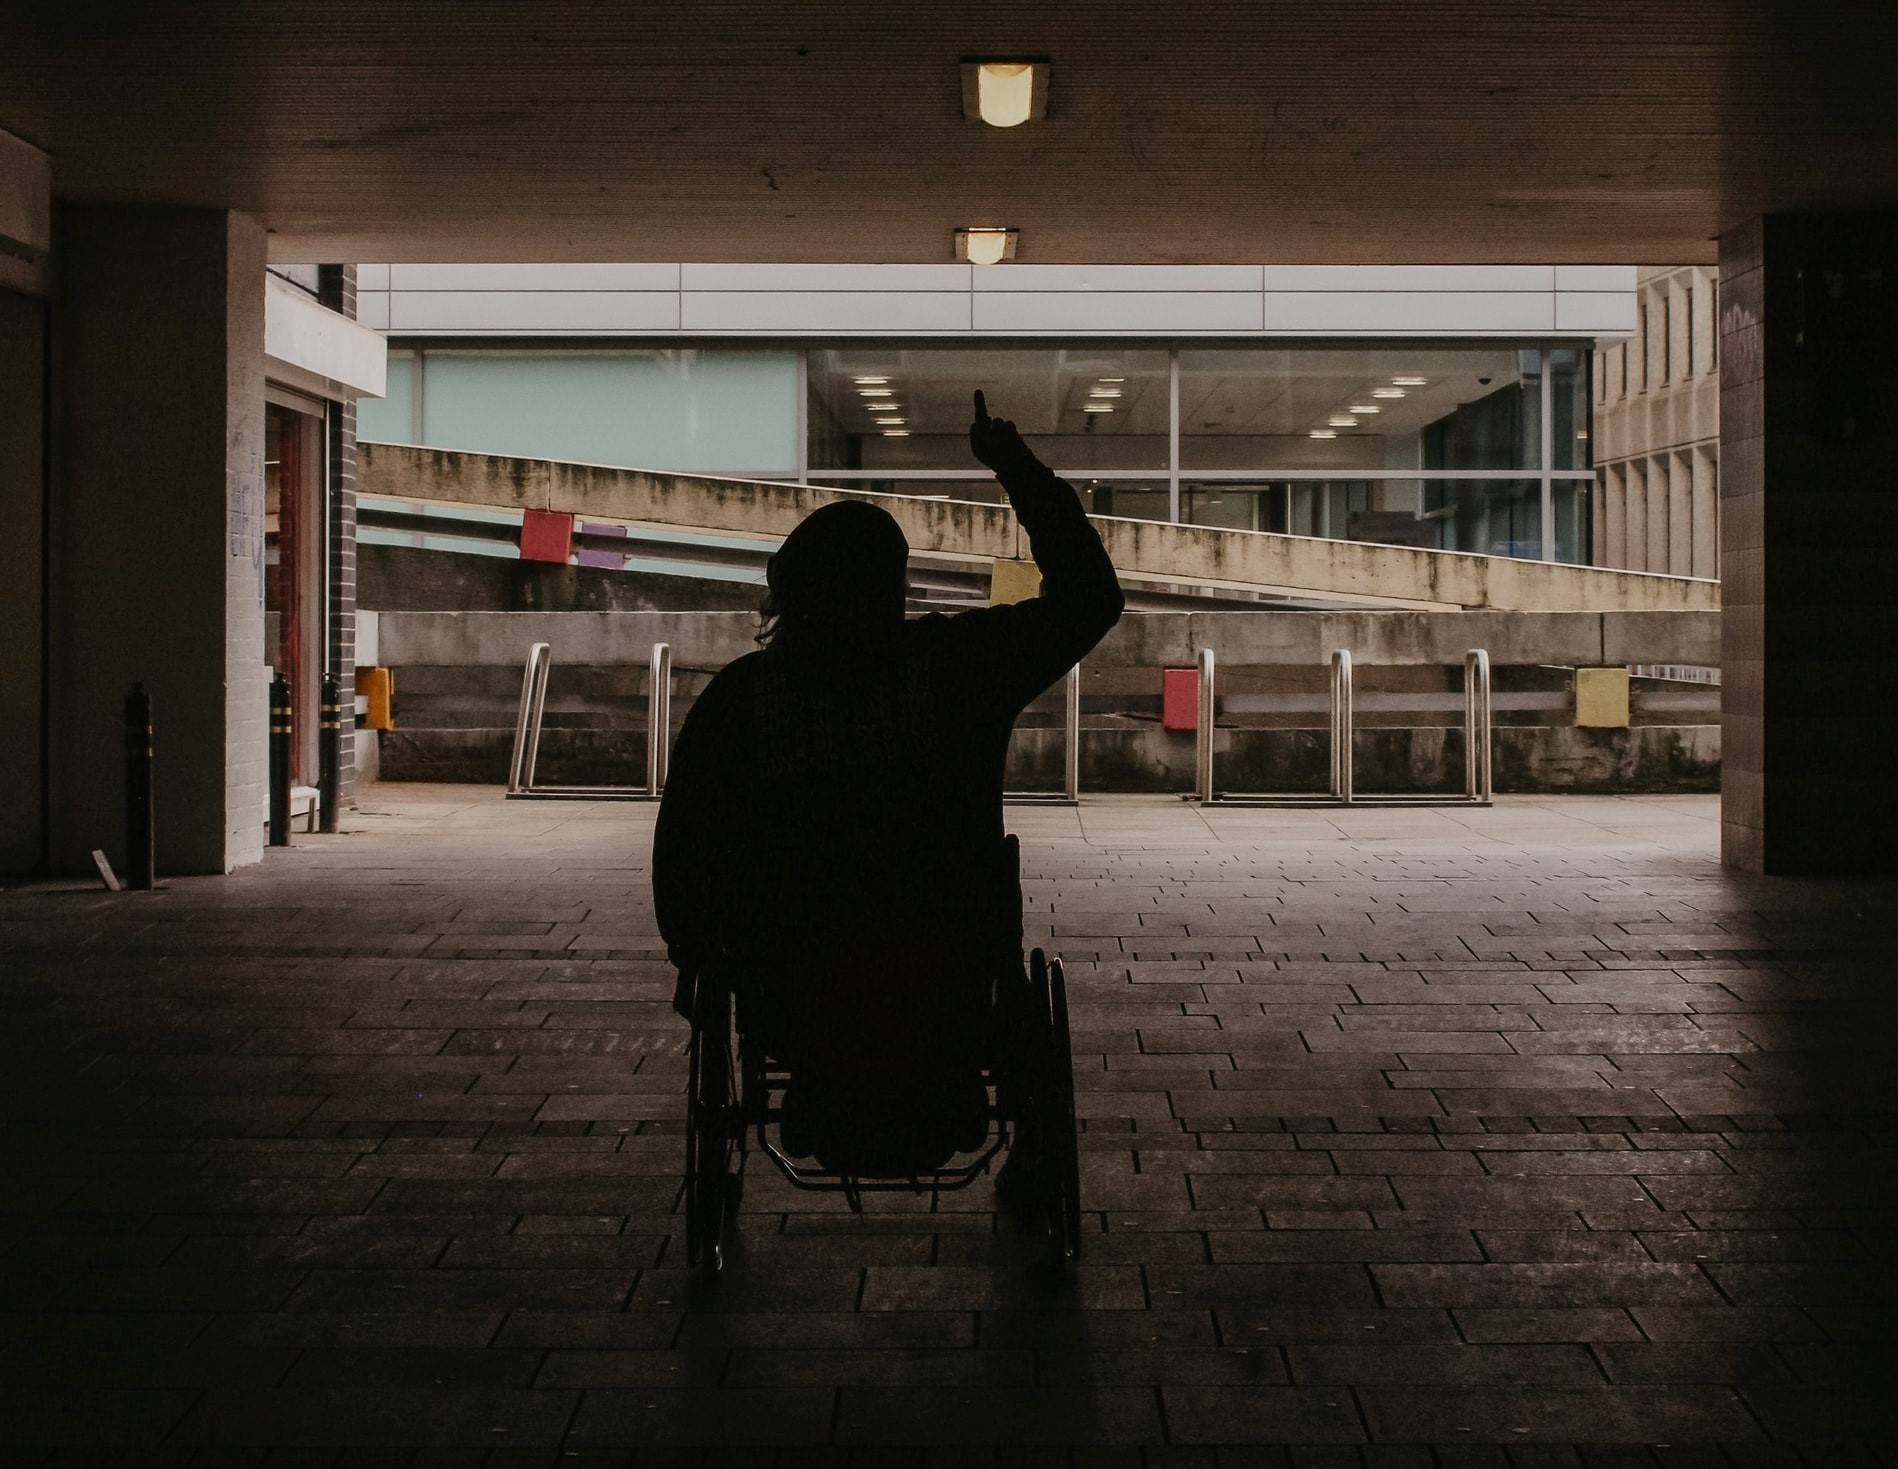 People in wheelchairs are underrepresented in the media.